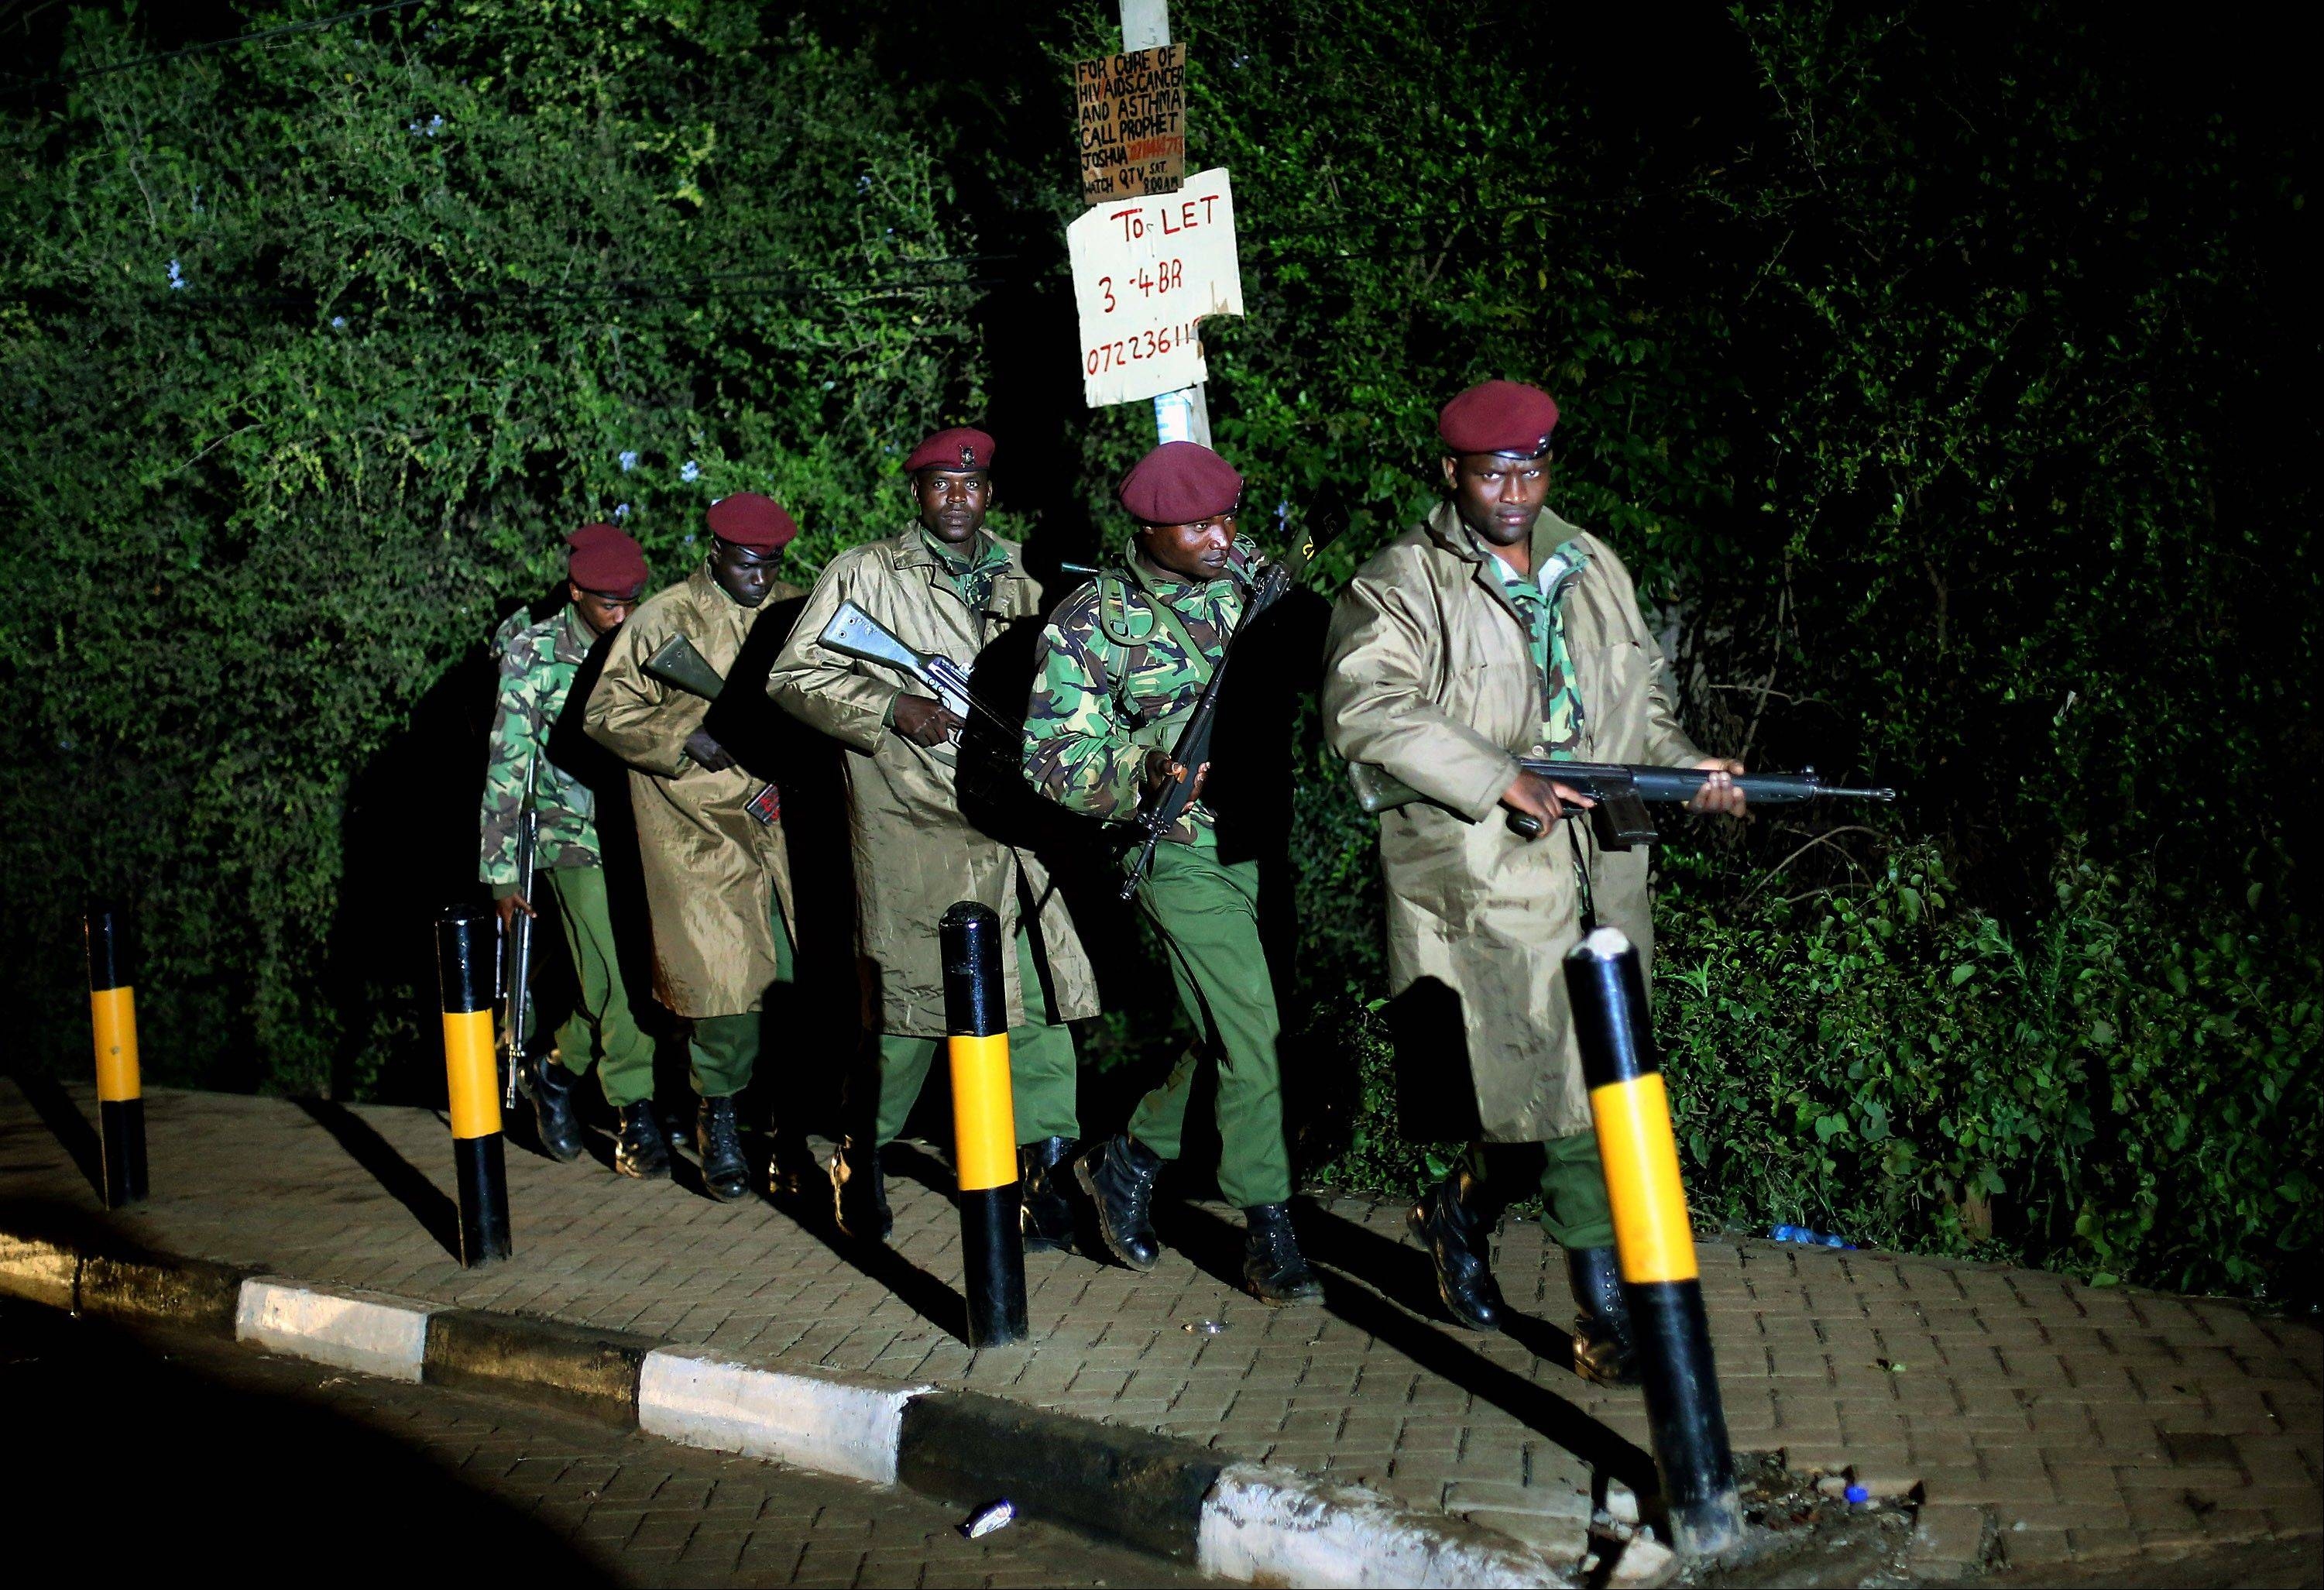 Kenyan Defense Forces leave the near vicinity of the Westgate Mall in Nairobi Kenya Monday Sept. 23 2013. Multiple large blasts have rocked the mall where a hostage siege is in its third day. Associated Press reporters on the scene heard multiple blasts and a barrage of gunfire. Security forces have been attempting to rescue an unknown number of hostages inside the mall held by al-Qaida-linked terrorists.